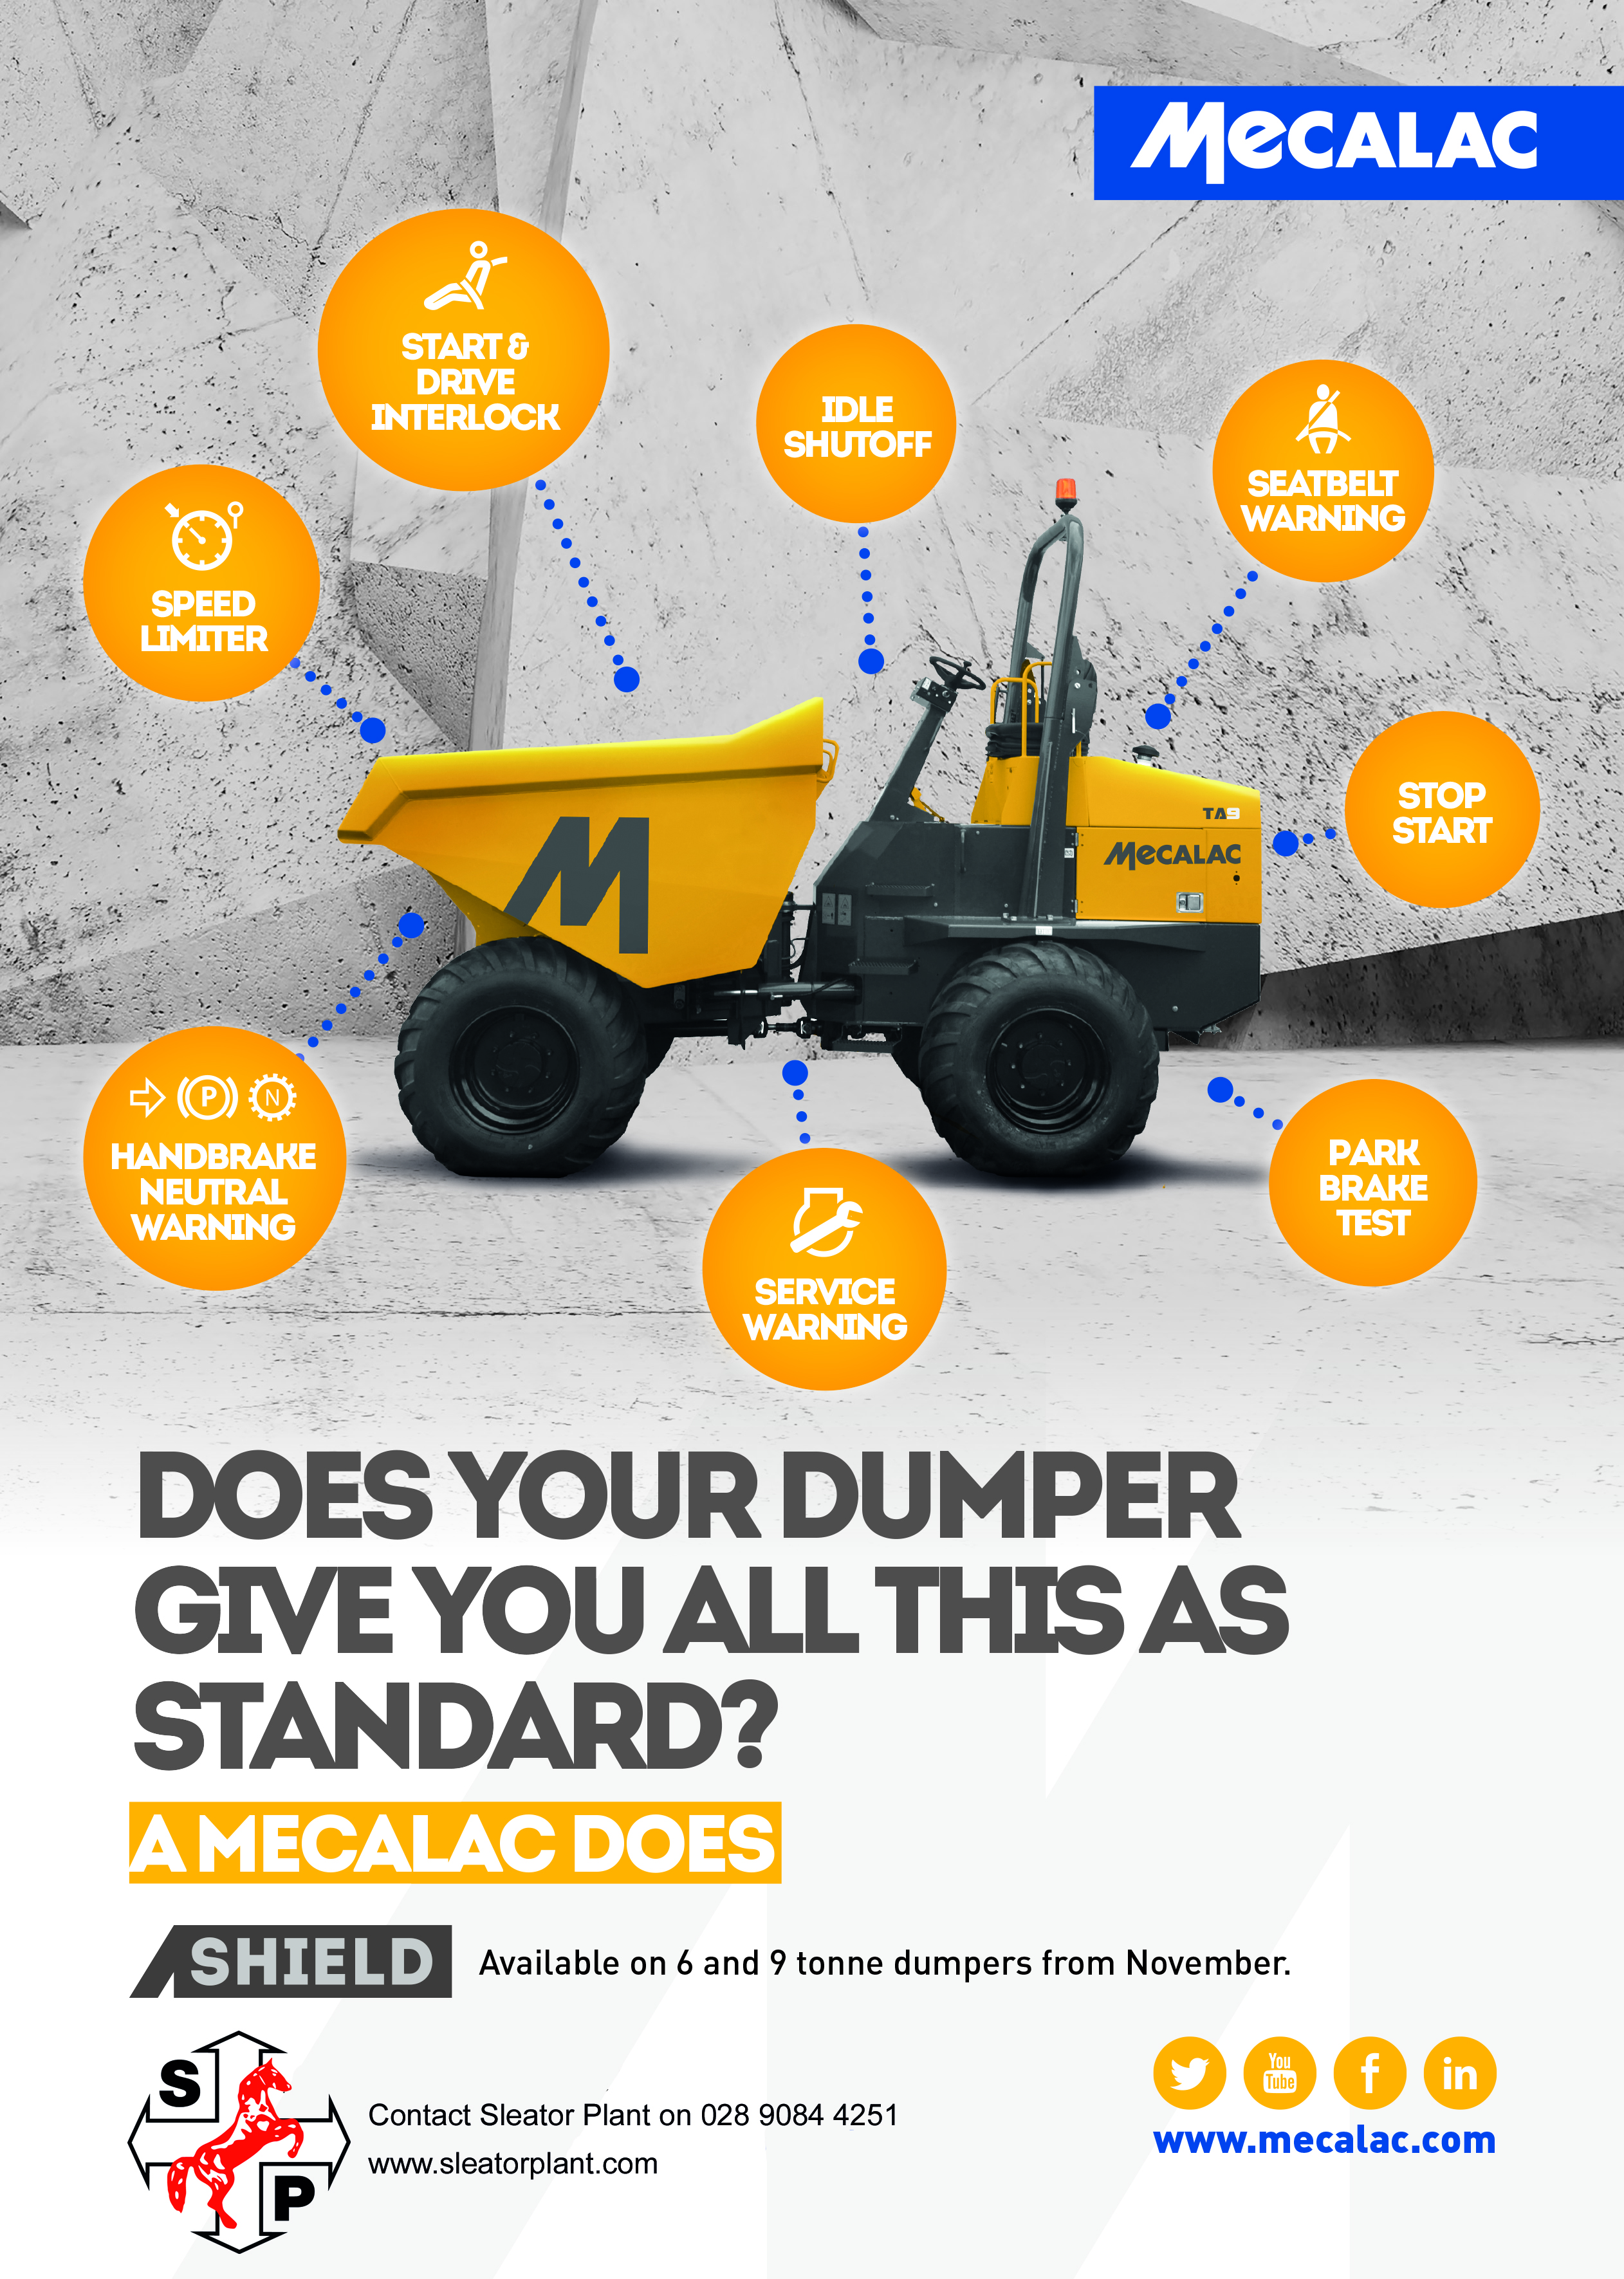 IR5286_Mecalac_Earthmovers_Full_page_advert_AW.indd